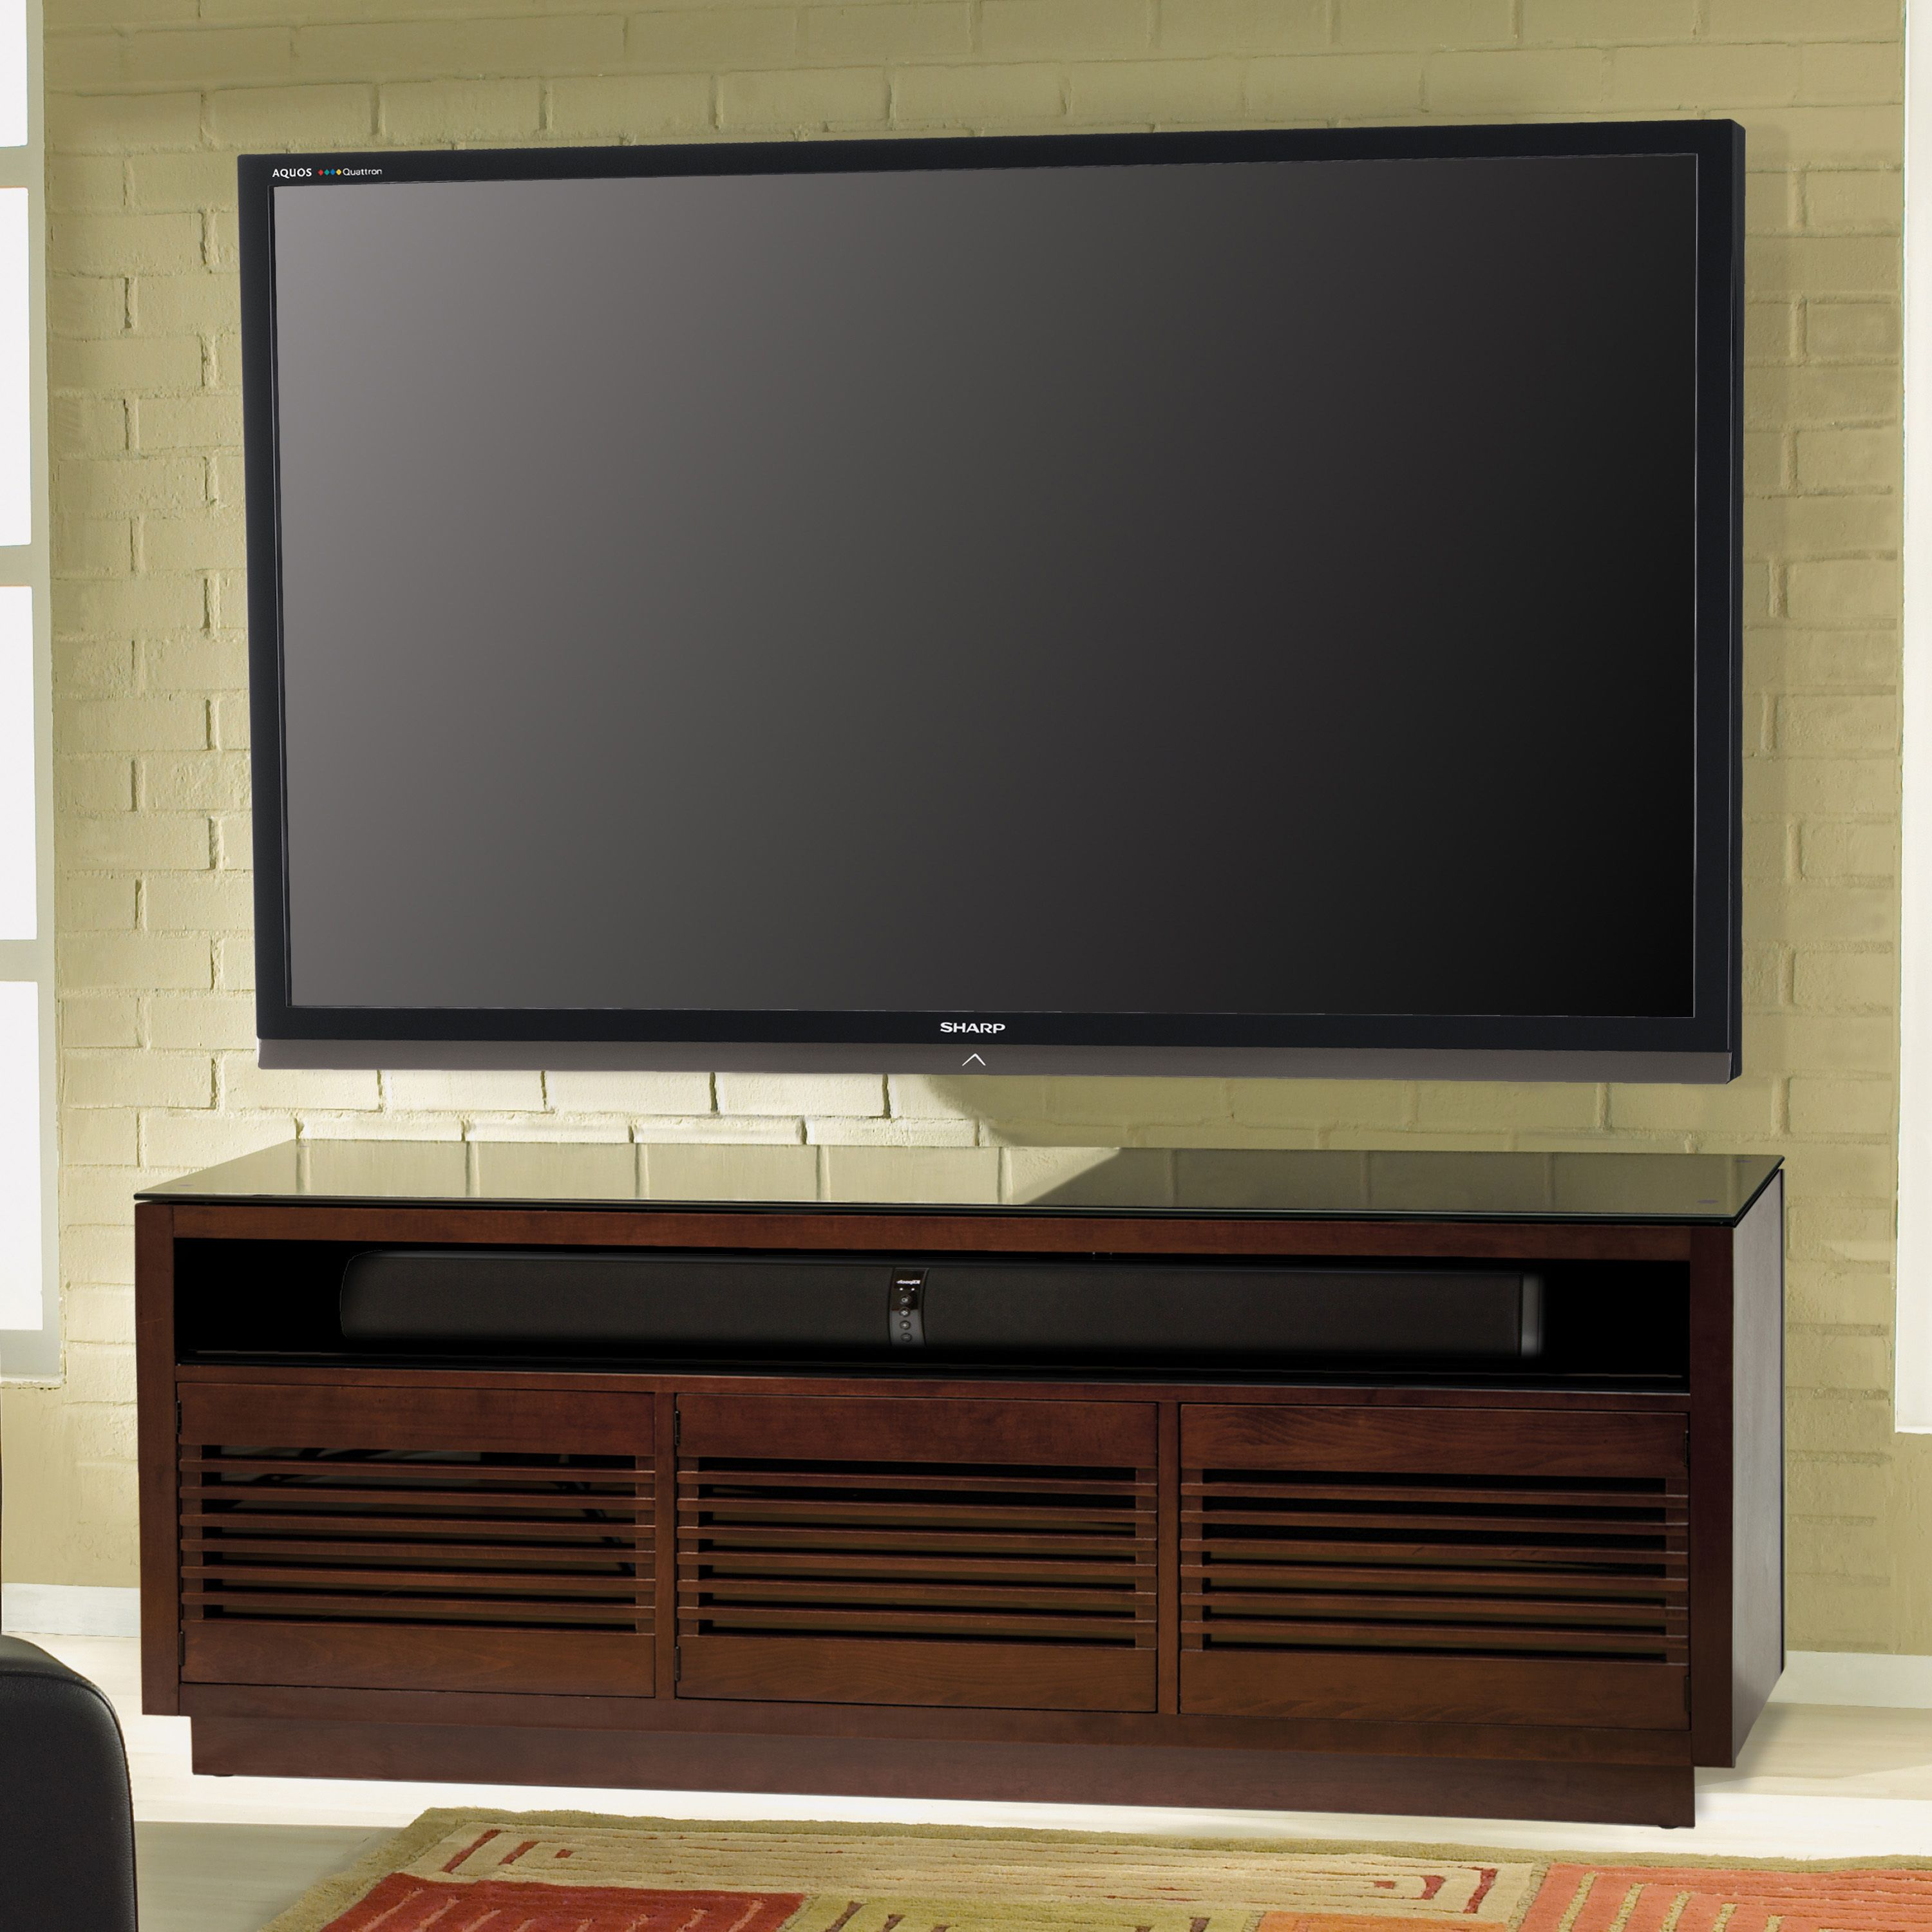 Accommodates Most Flat Panel Tvs Up To 70 Inches Living Room Redo